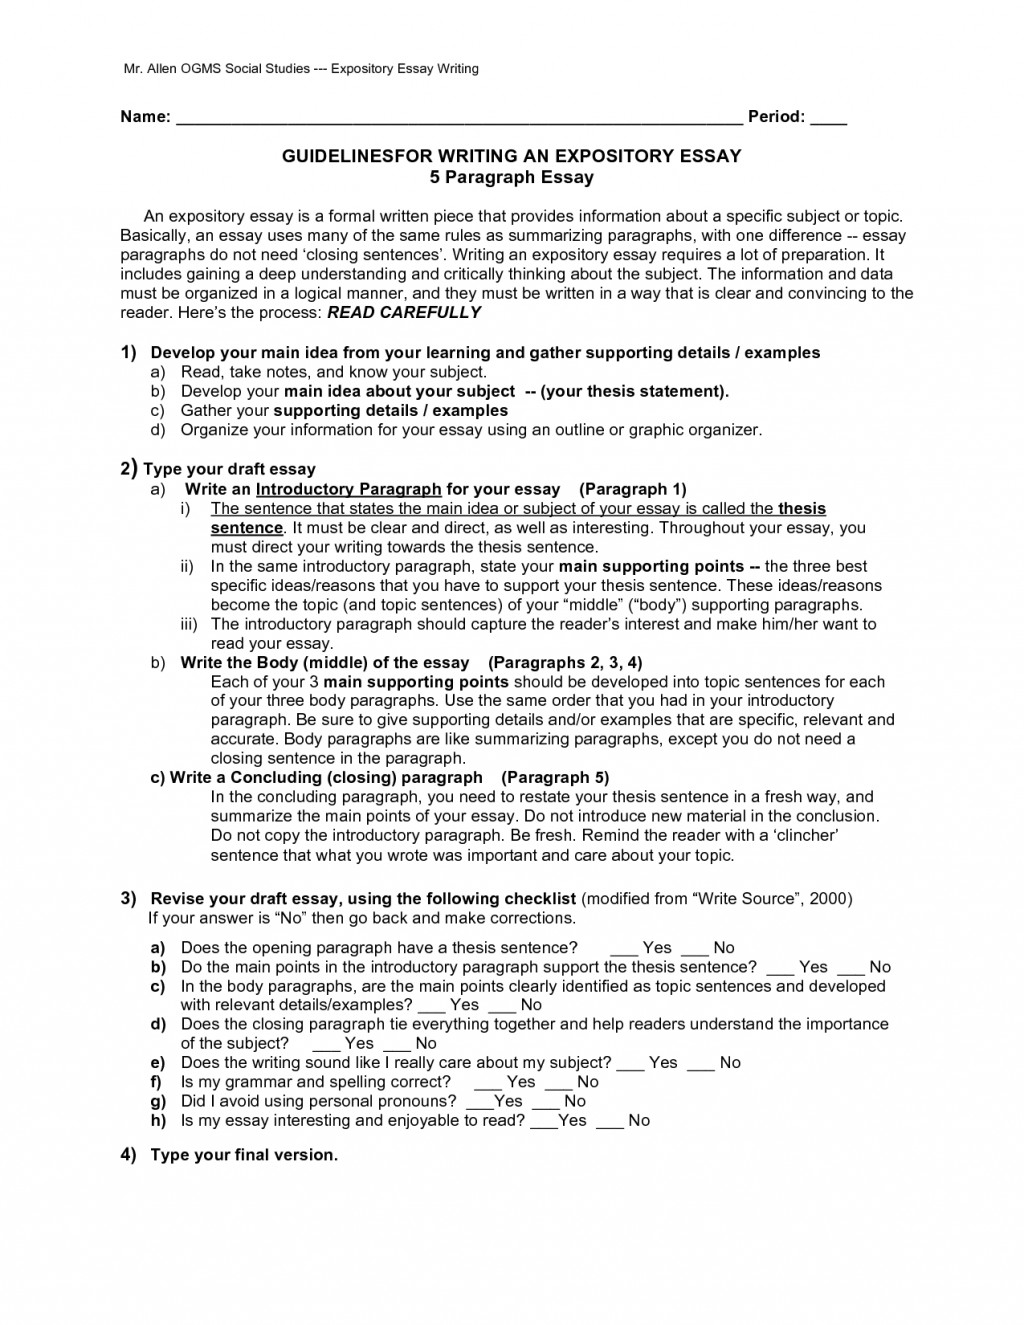 012 Paragraph Expository Essay Example 569202 Stupendous Sample 5 Camping Pdf For 4th Grade Large